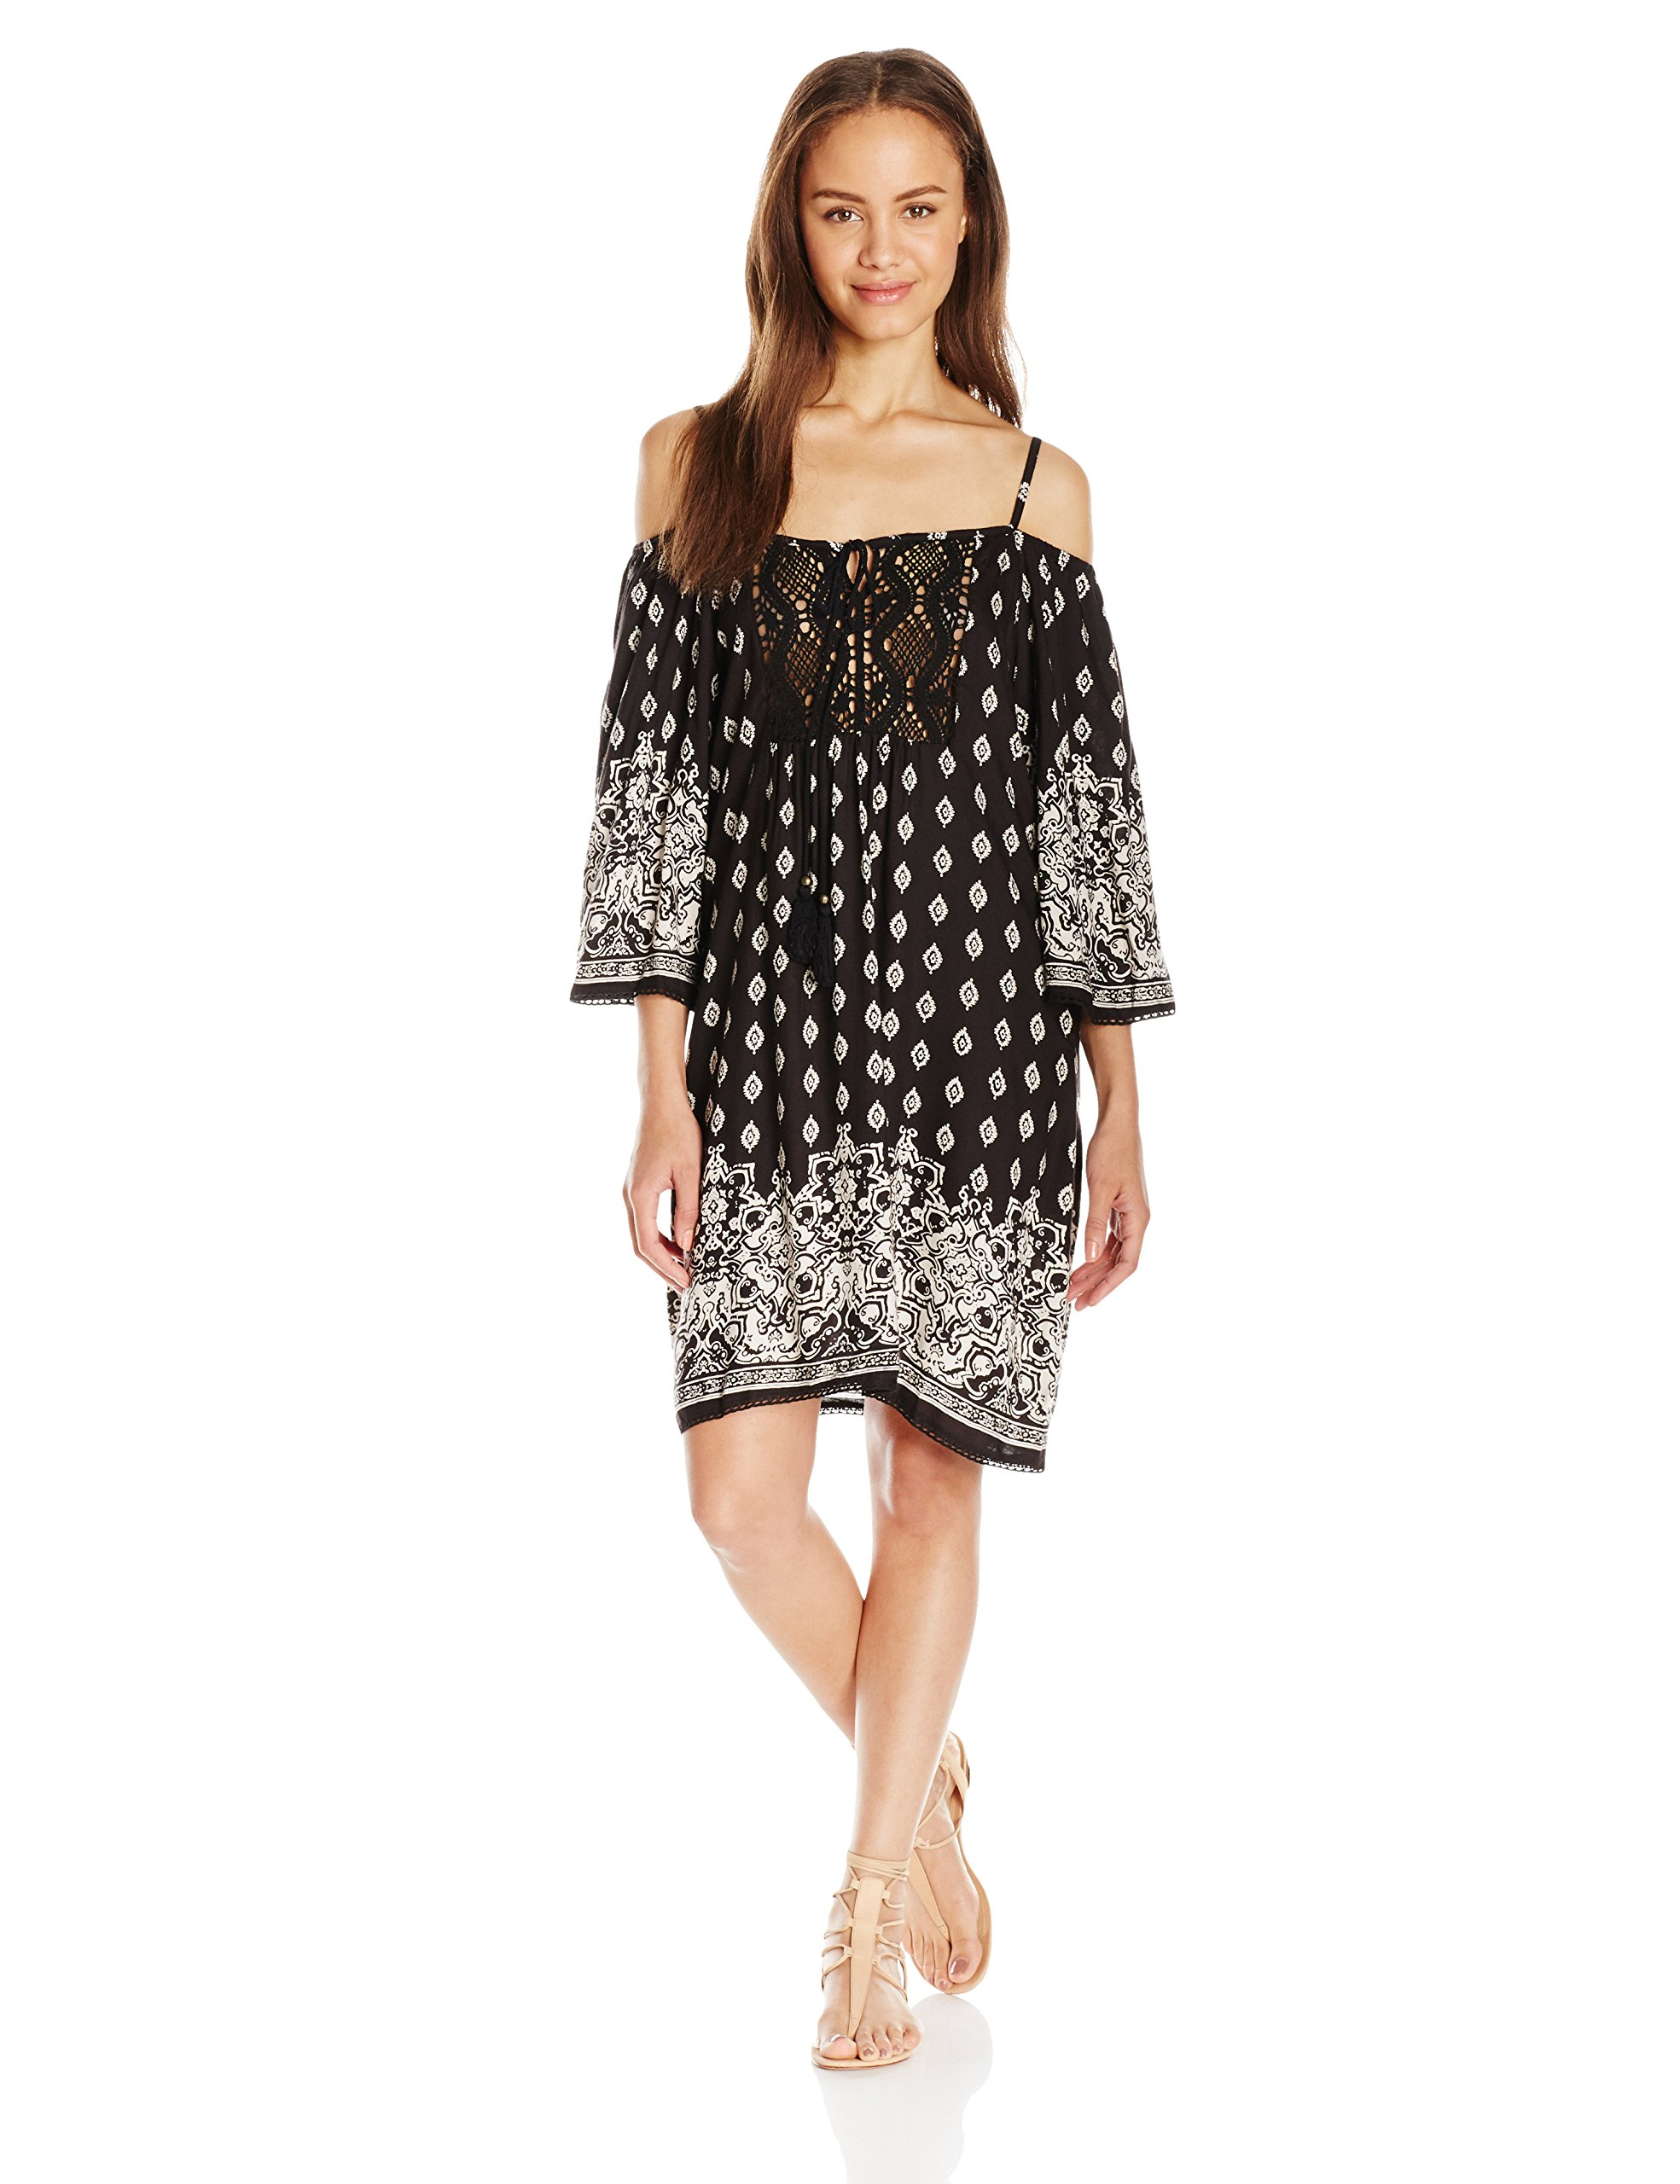 Angie Women's Cold Shoulder Printed Dress, Black, Large